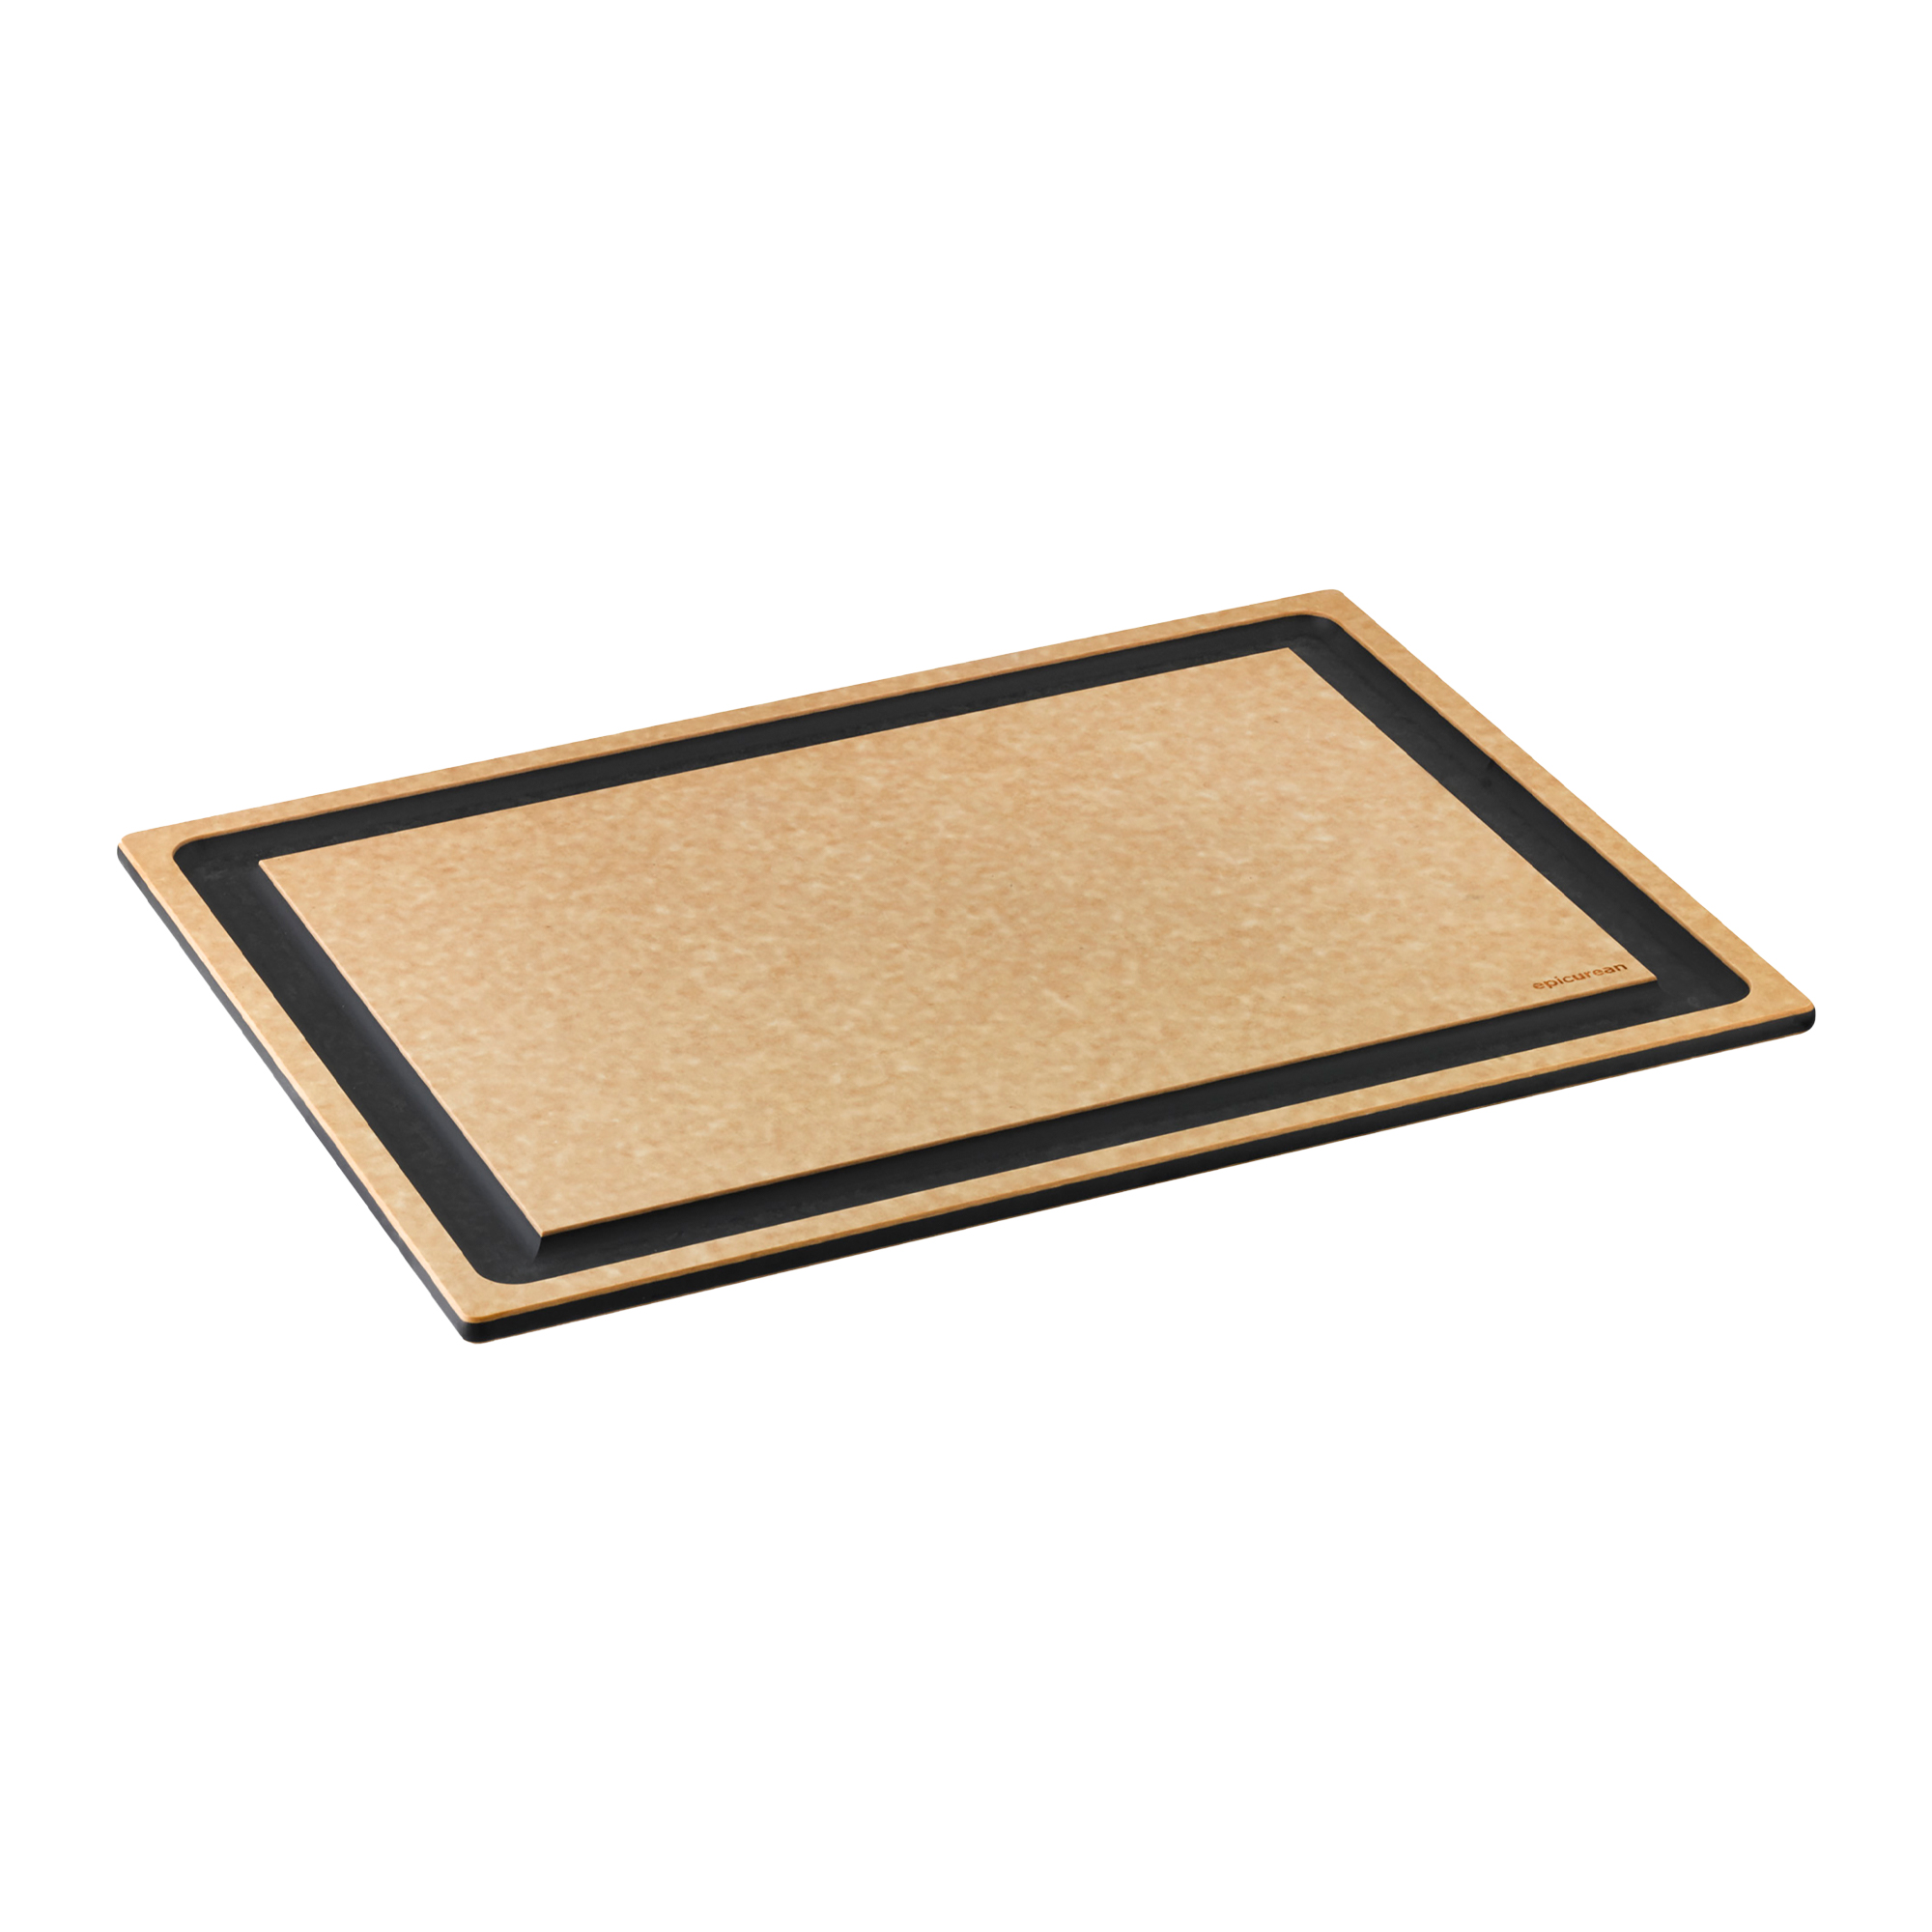 Epicurean cutting board with well natural